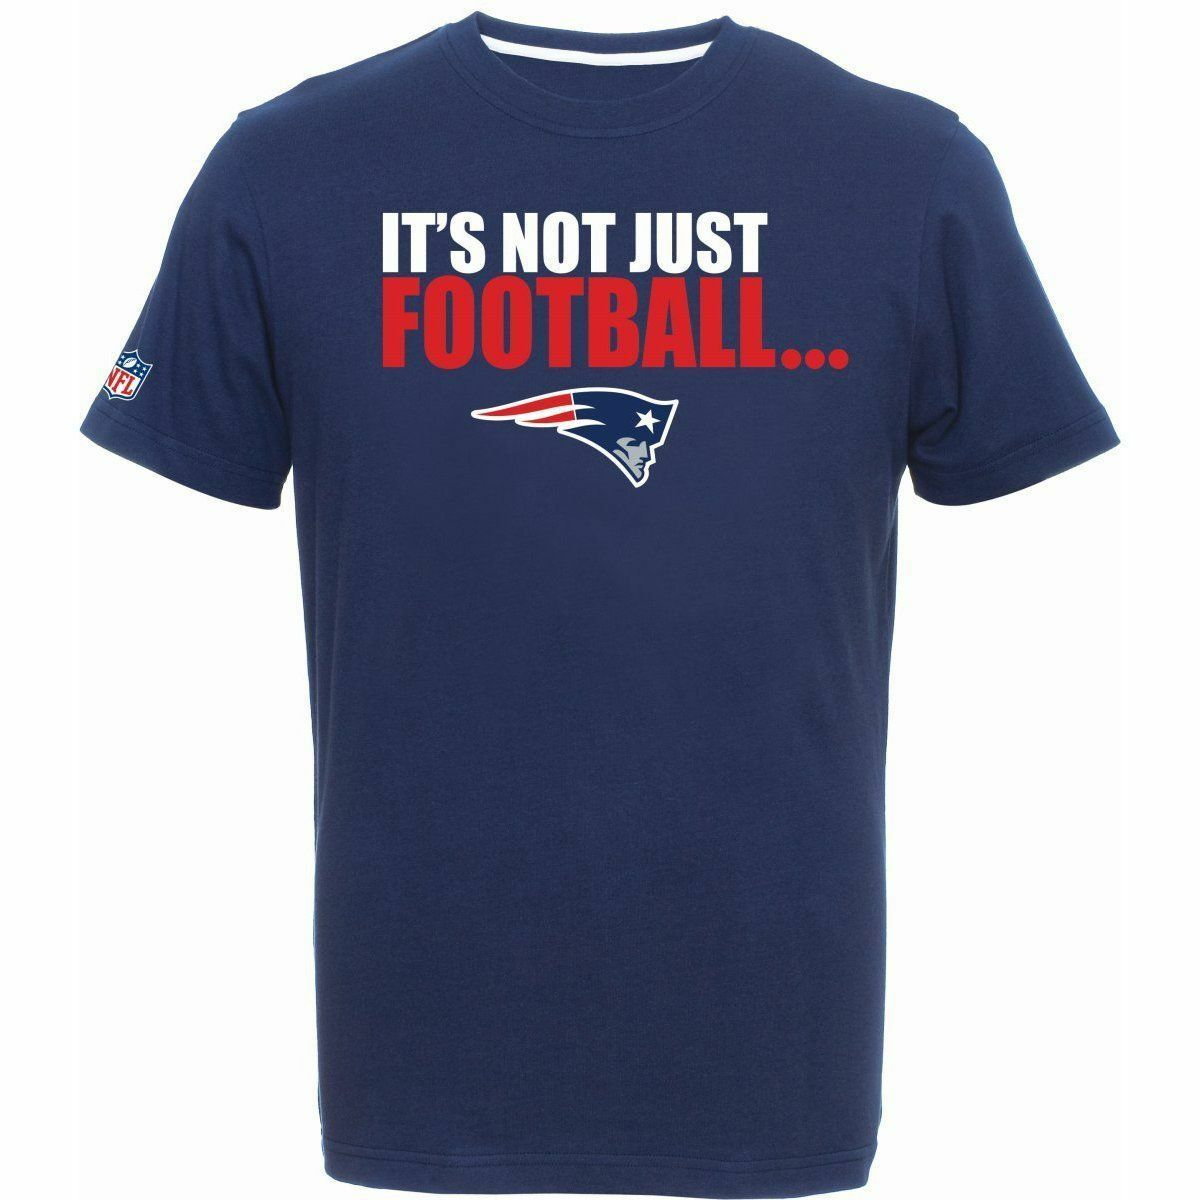 NFL FOOTBALL T-shirt Nuovo England Patriots it 's not just FOOTBALL